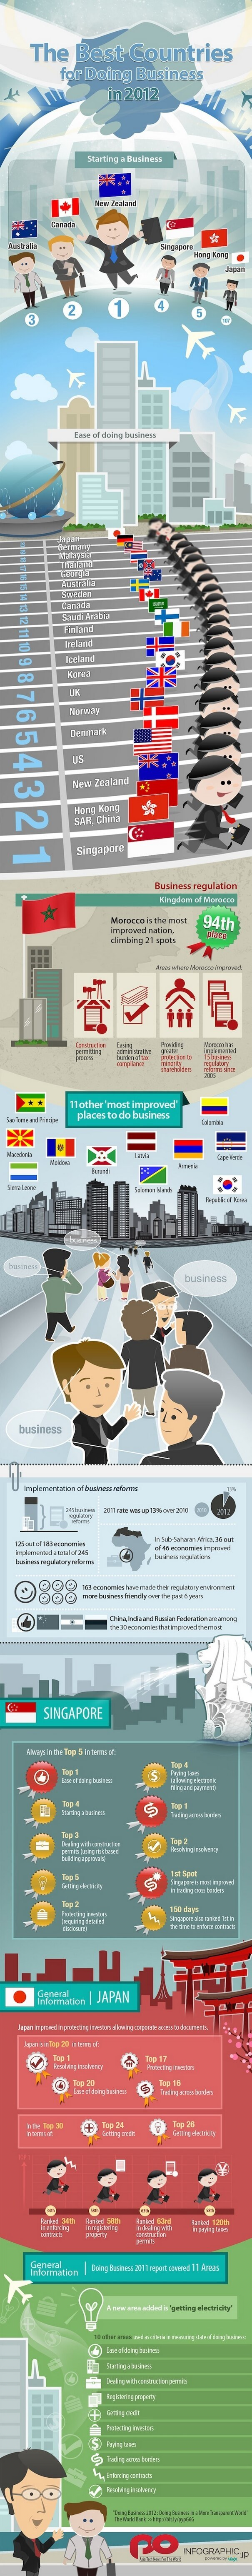 The Best Countries for Doing Business in 2012 Infographic